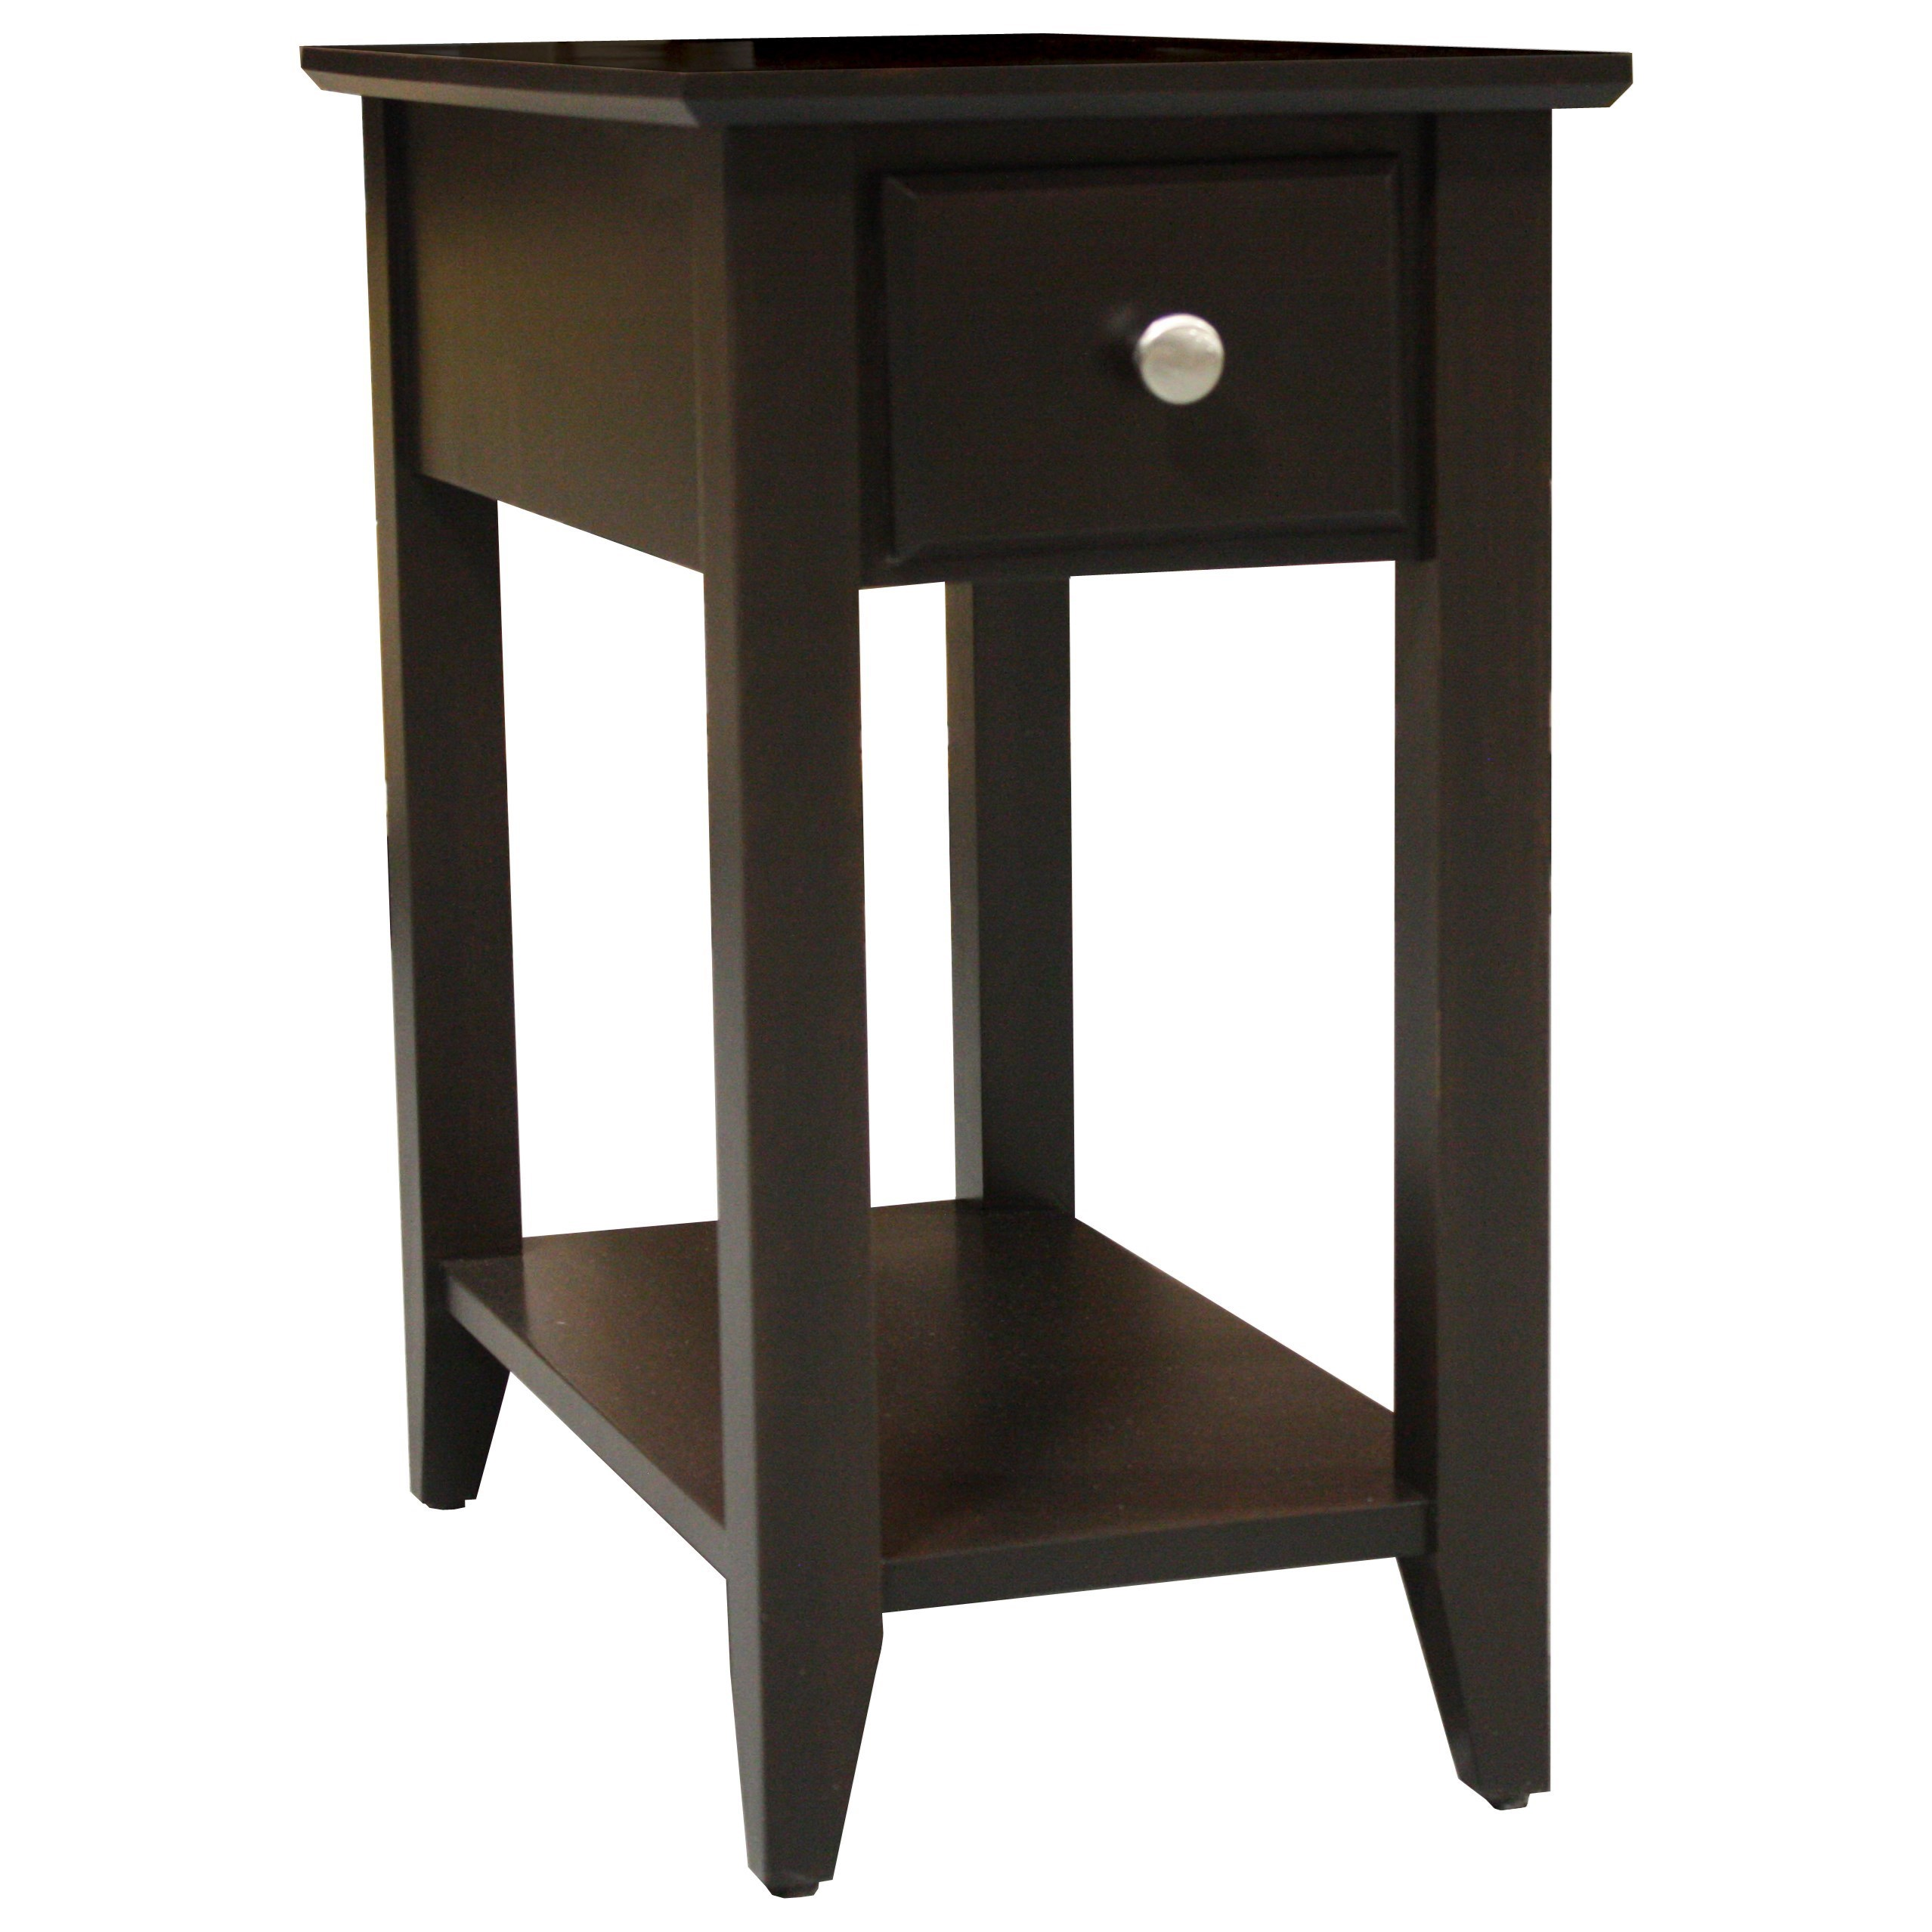 Alder Shaker Tables Chairside Table at Williams & Kay